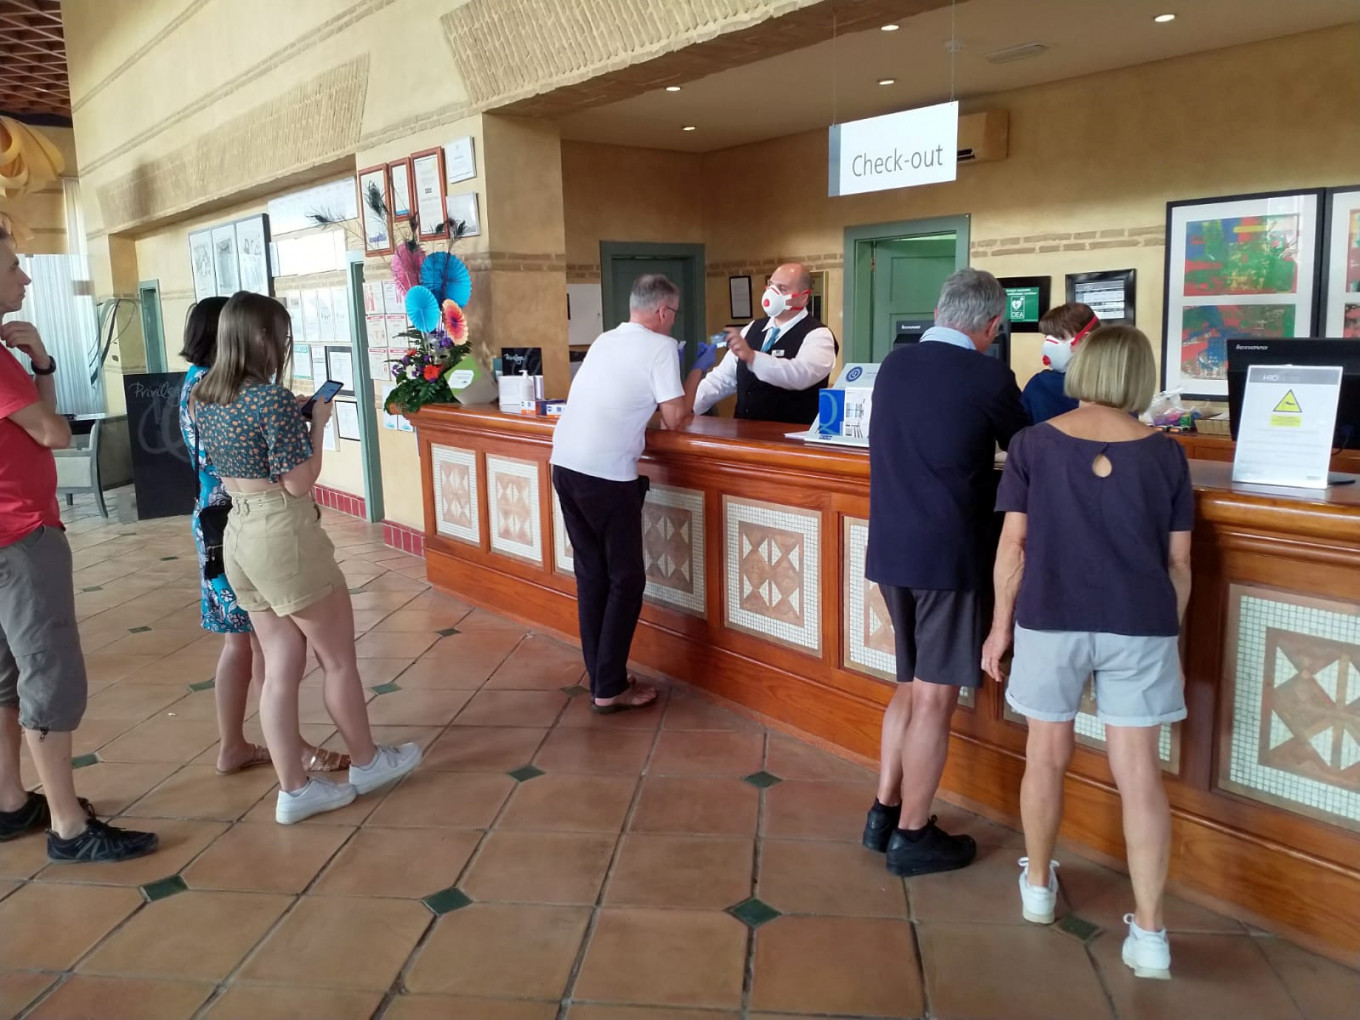 Coronavirus: New case confirmed at Tenerife hotel on lockdown